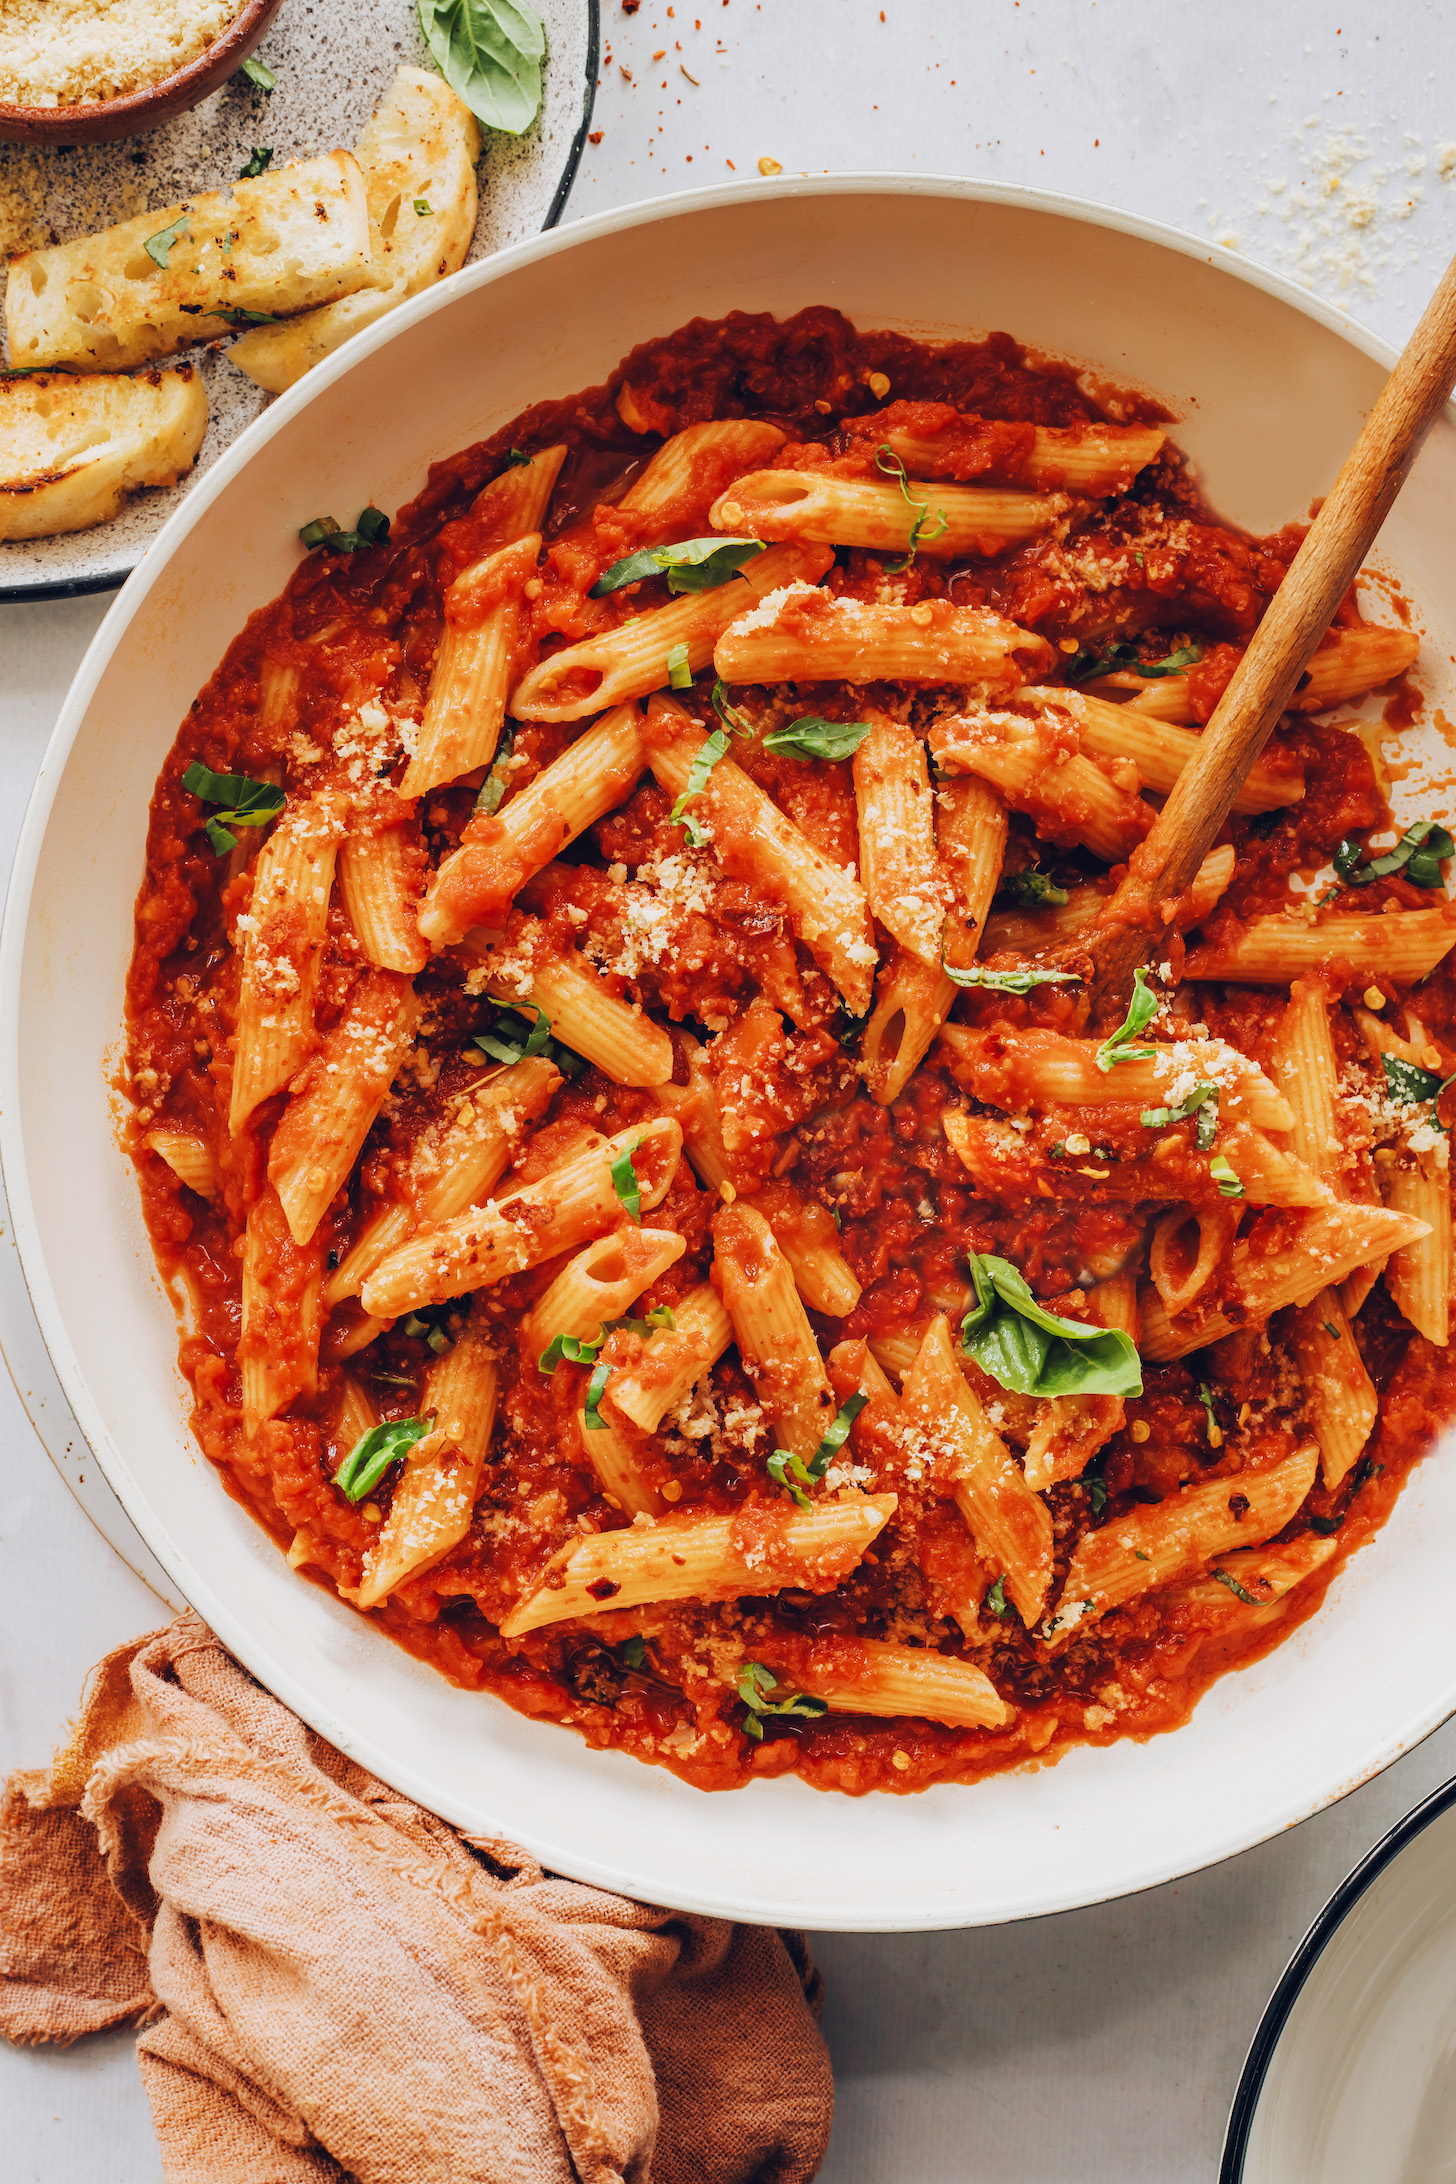 Slices of garlic bread next to a pan of our easy penne arrabbiata recipe